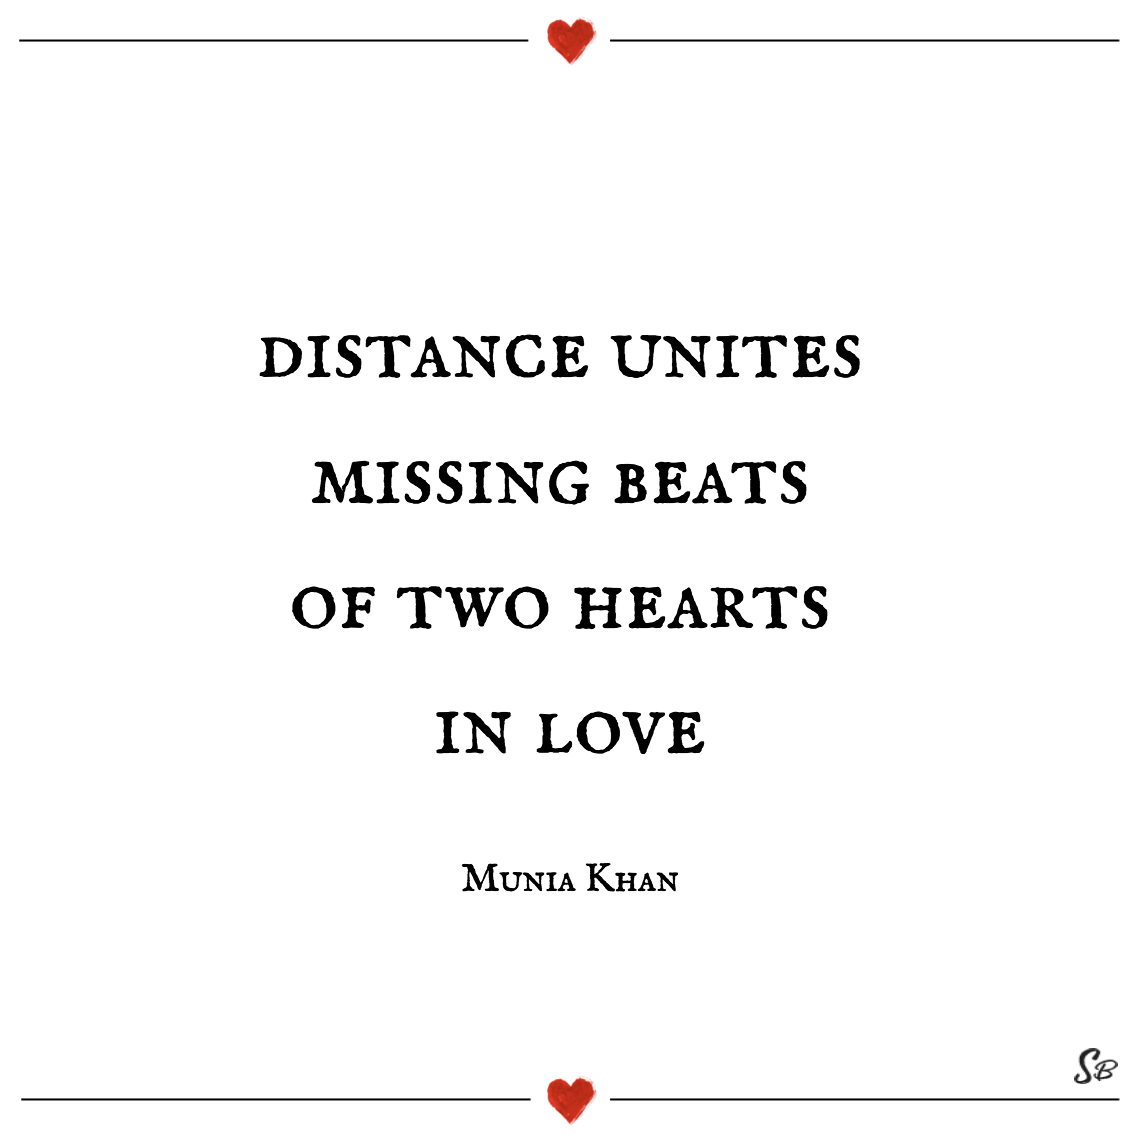 Distance unites missing beats of two hearts in love munia khan